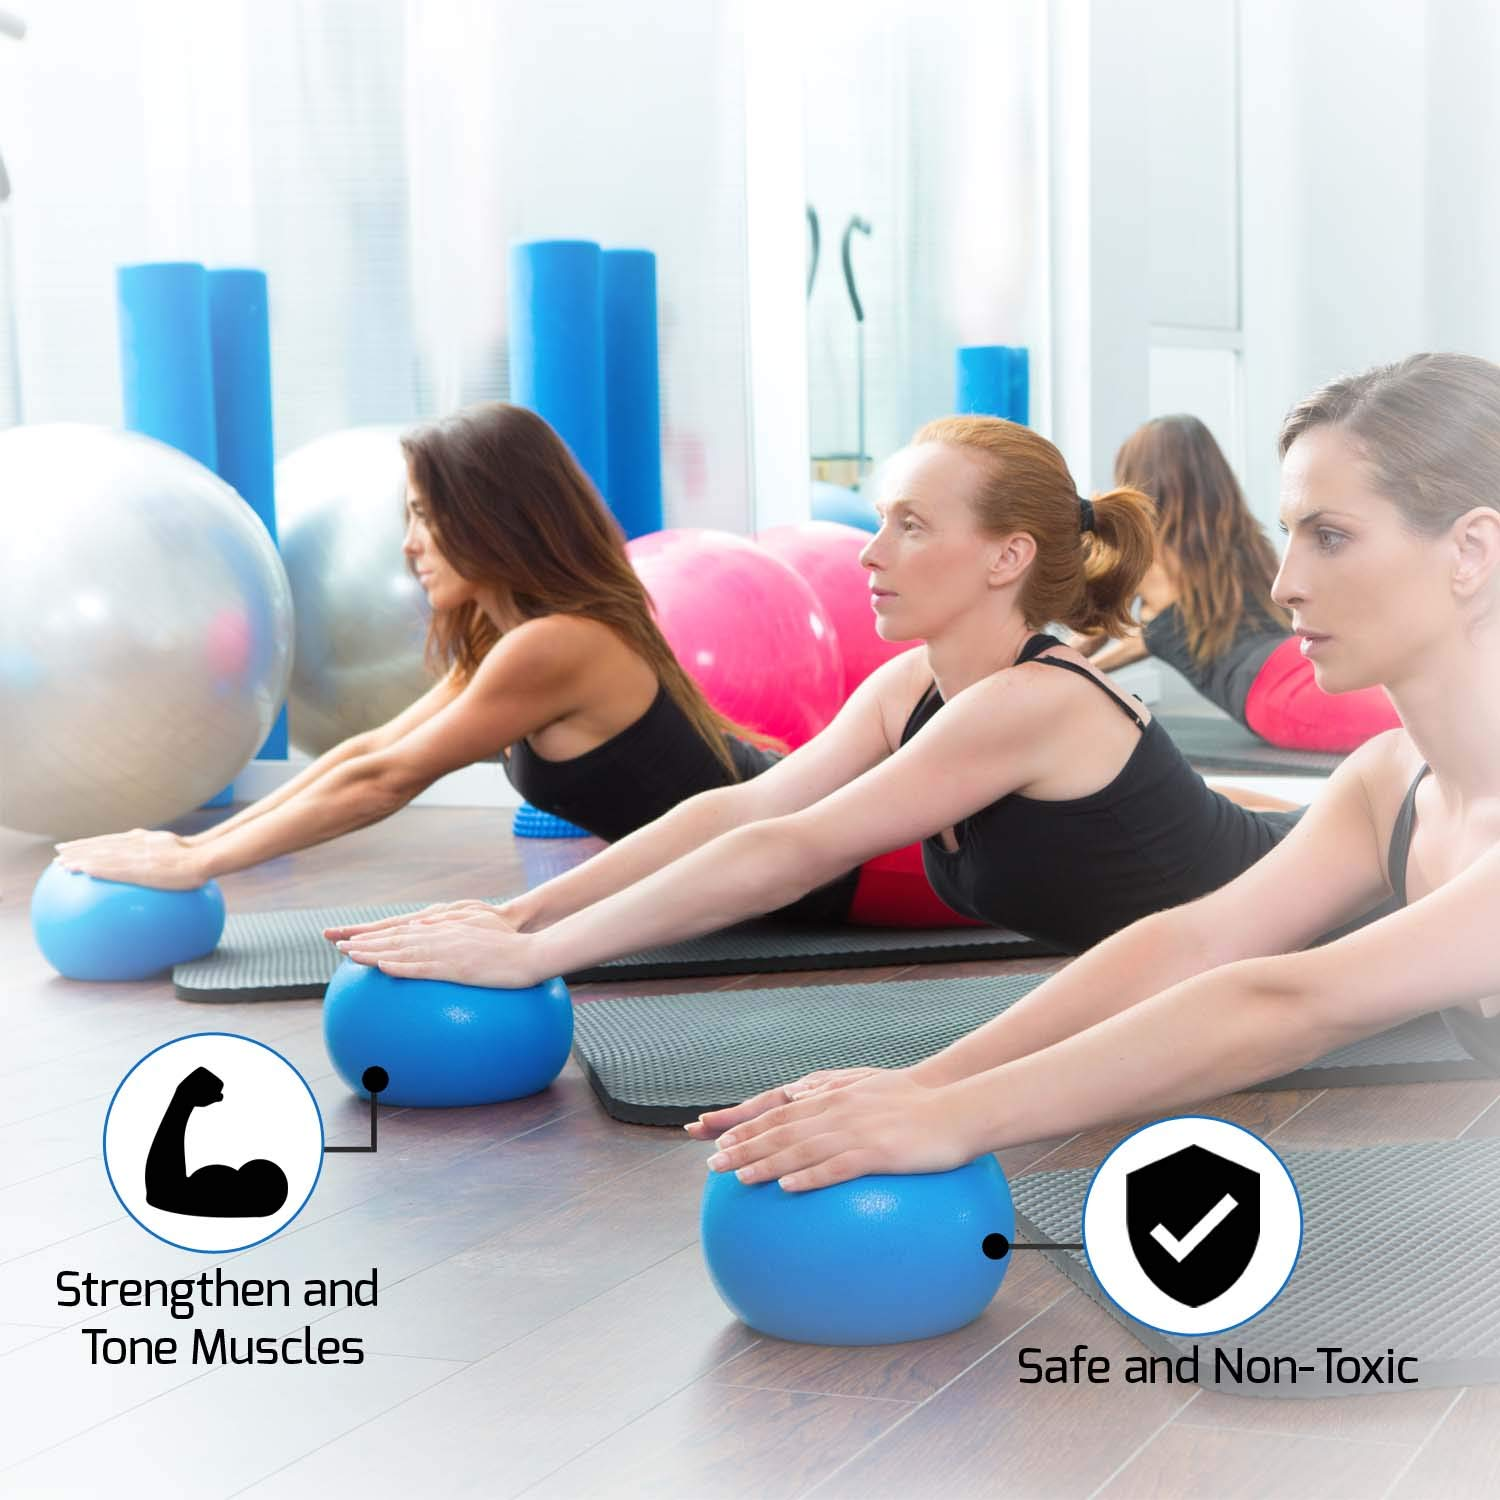 Before You Choose Buy a Pilates Ring forecasting